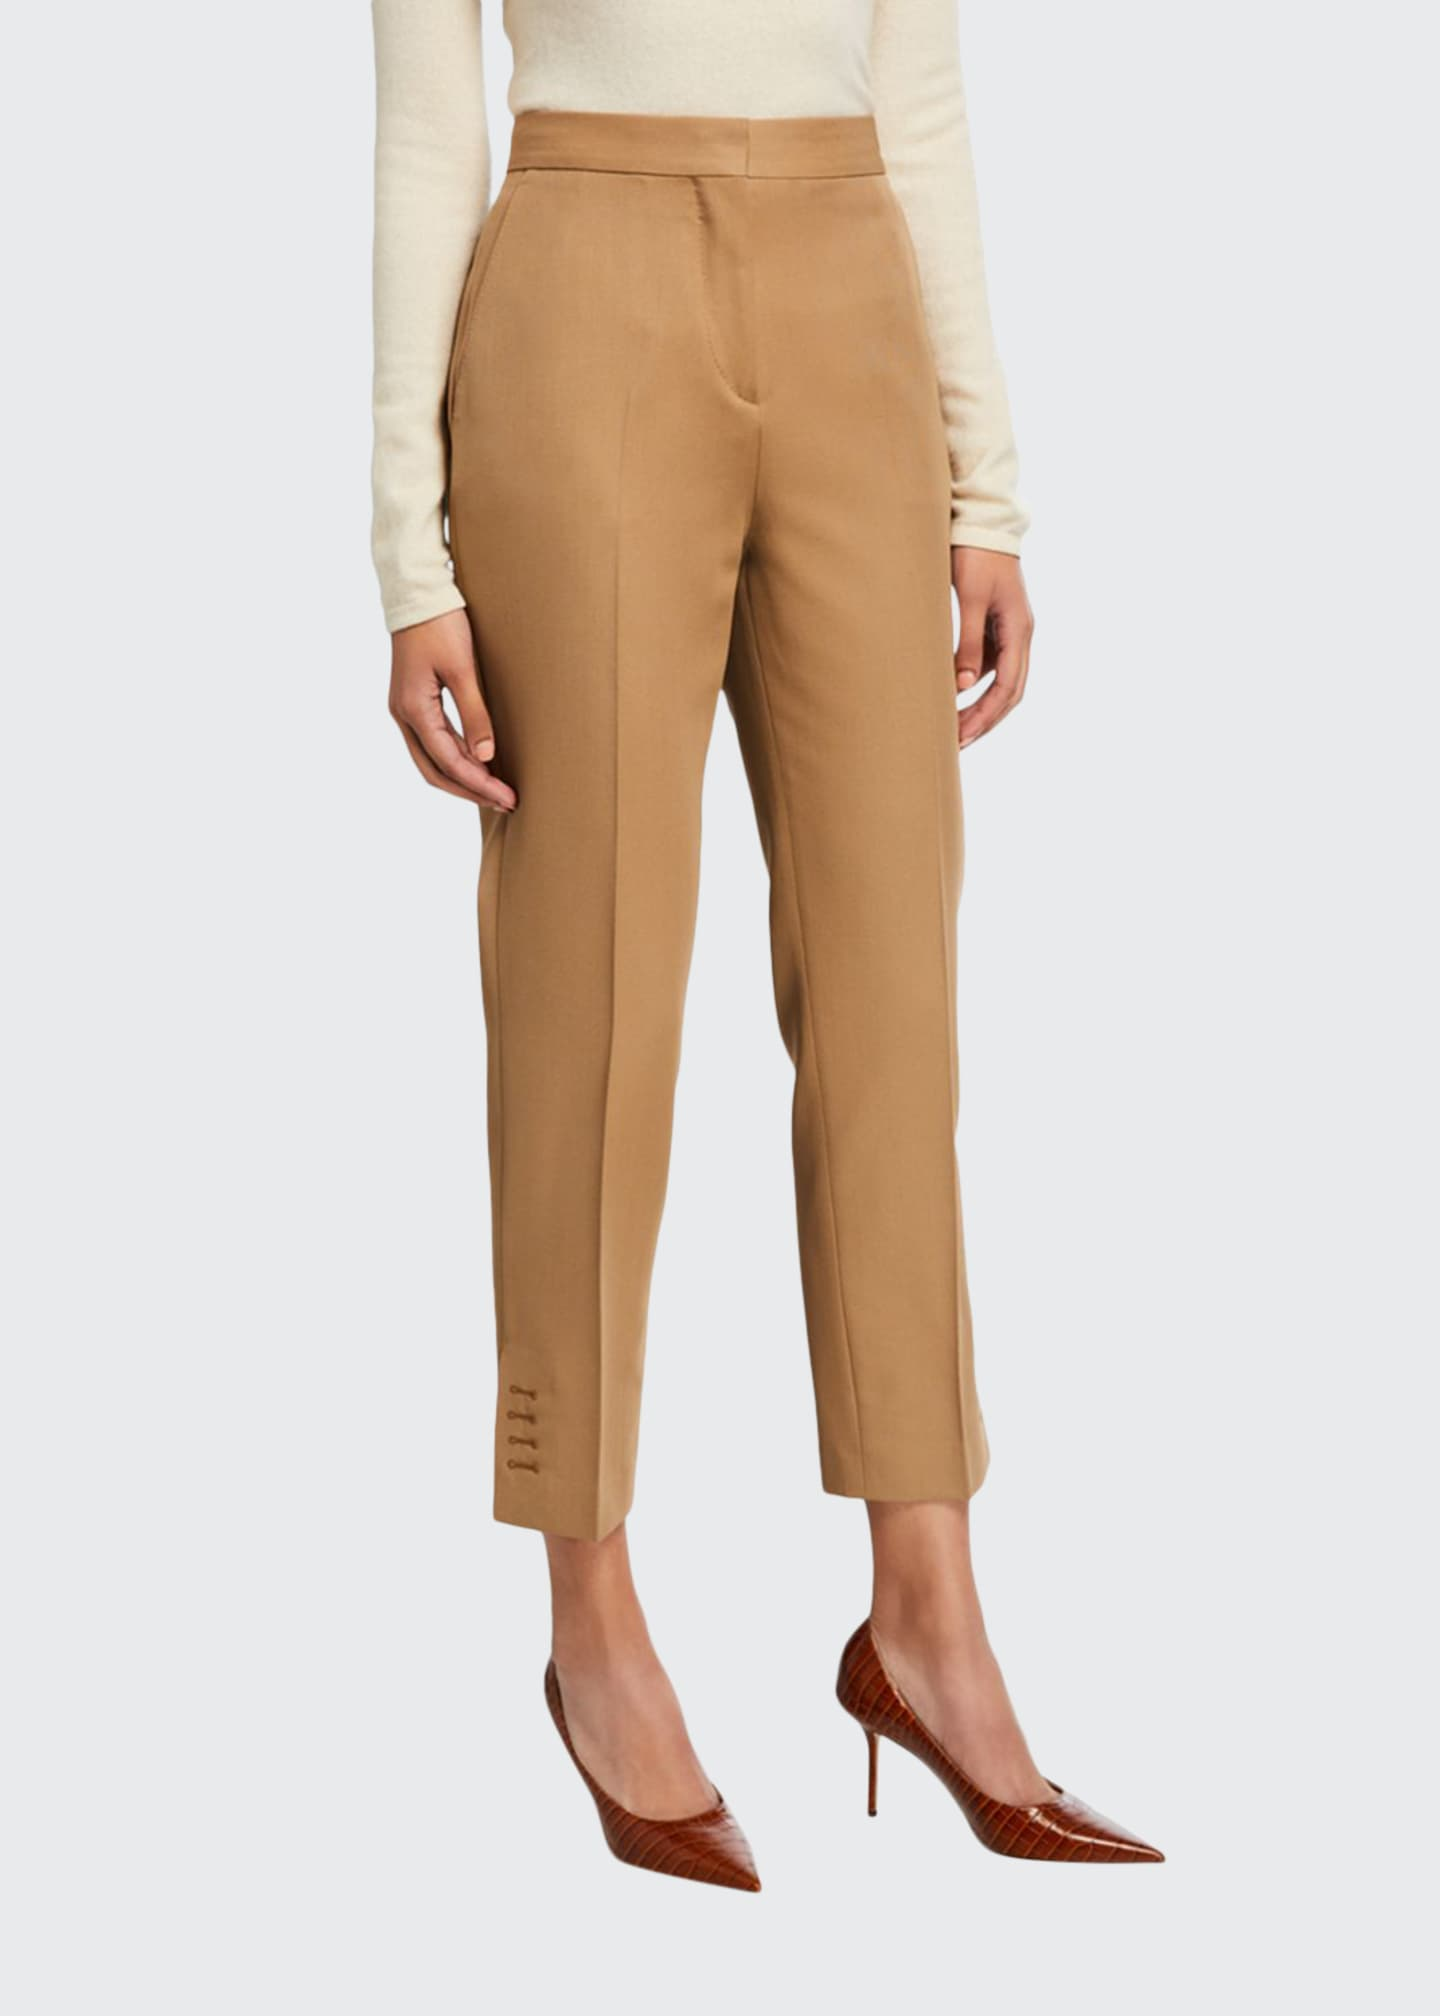 Burberry Button-Seam Cuff Trousers